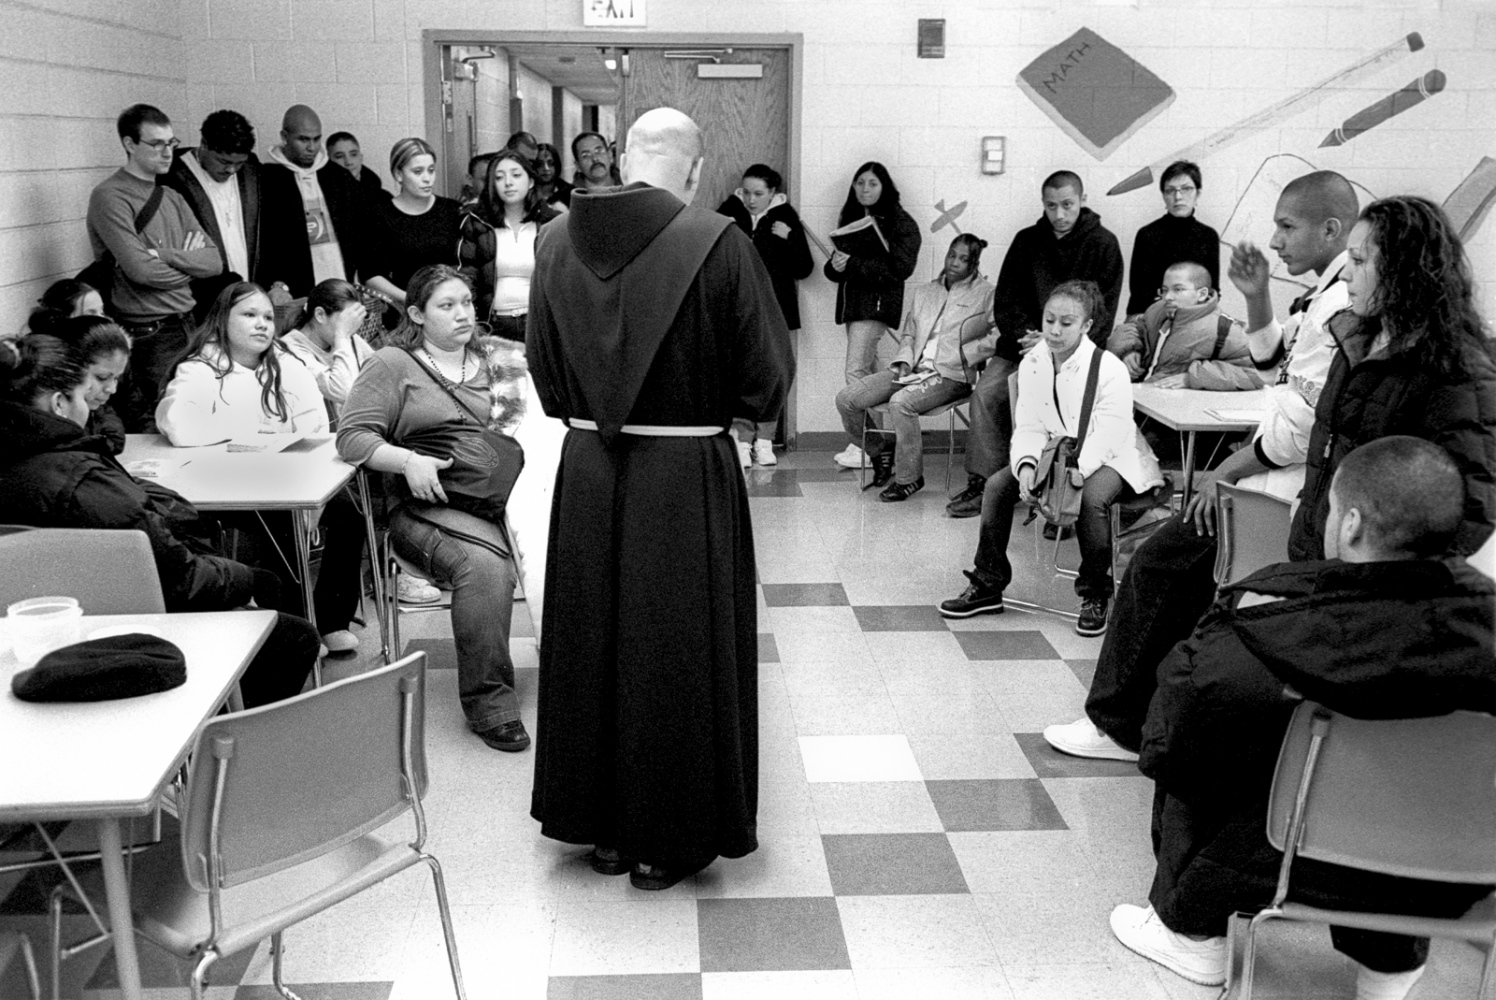 Father Shea prays with students on Ash Wednesday. He was not directly affiliated with Second Chance but Father Shea tried to maintain a constant presence in the lives of the students.